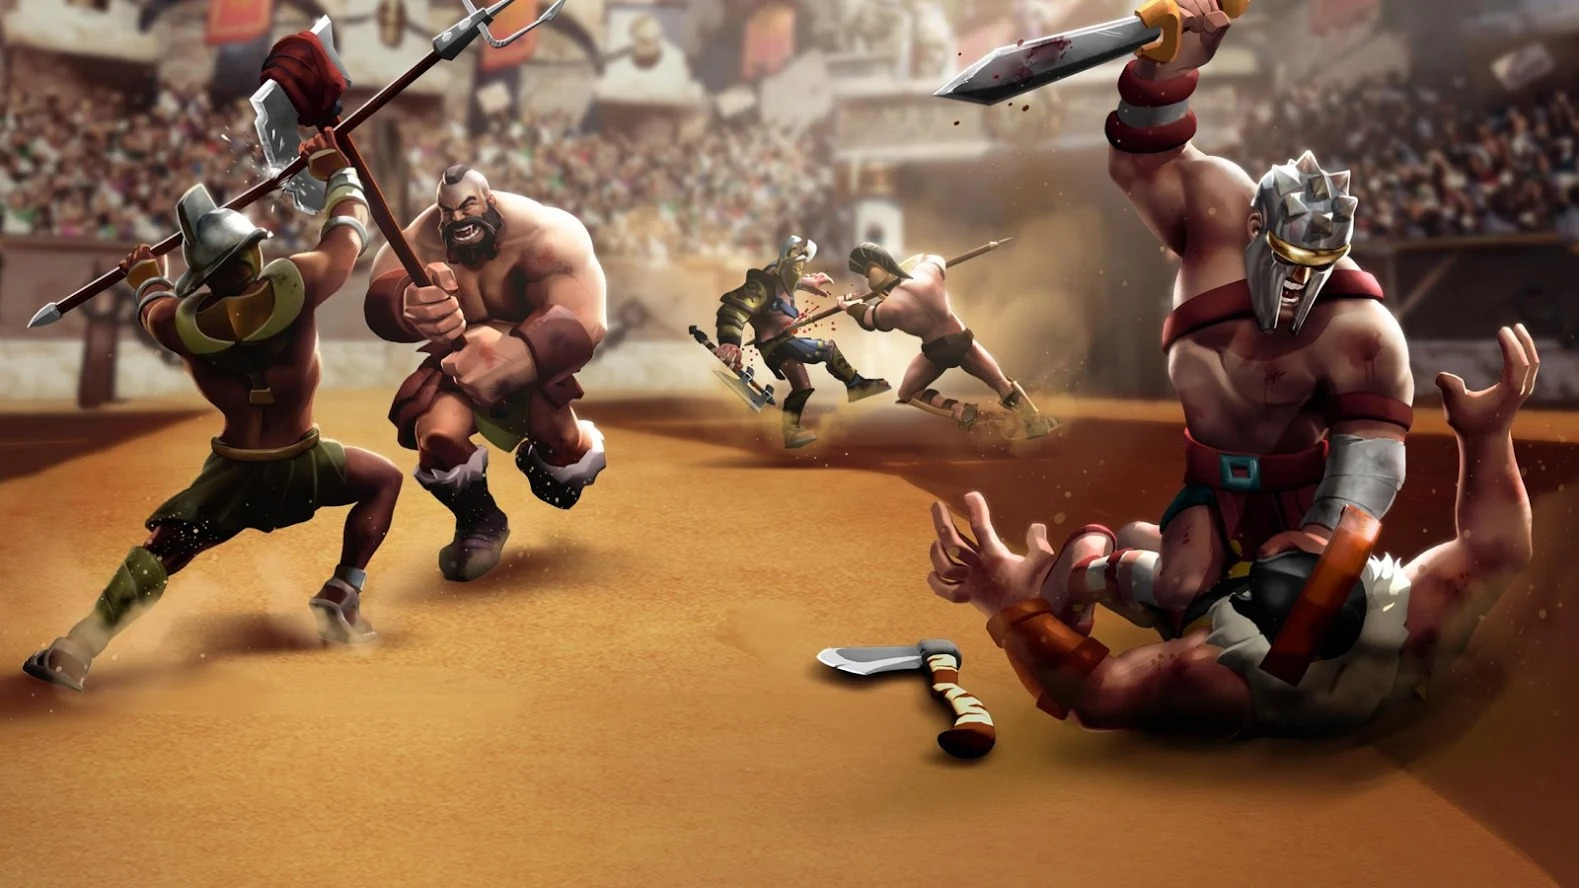 Clash of Gladiator Heroes 2